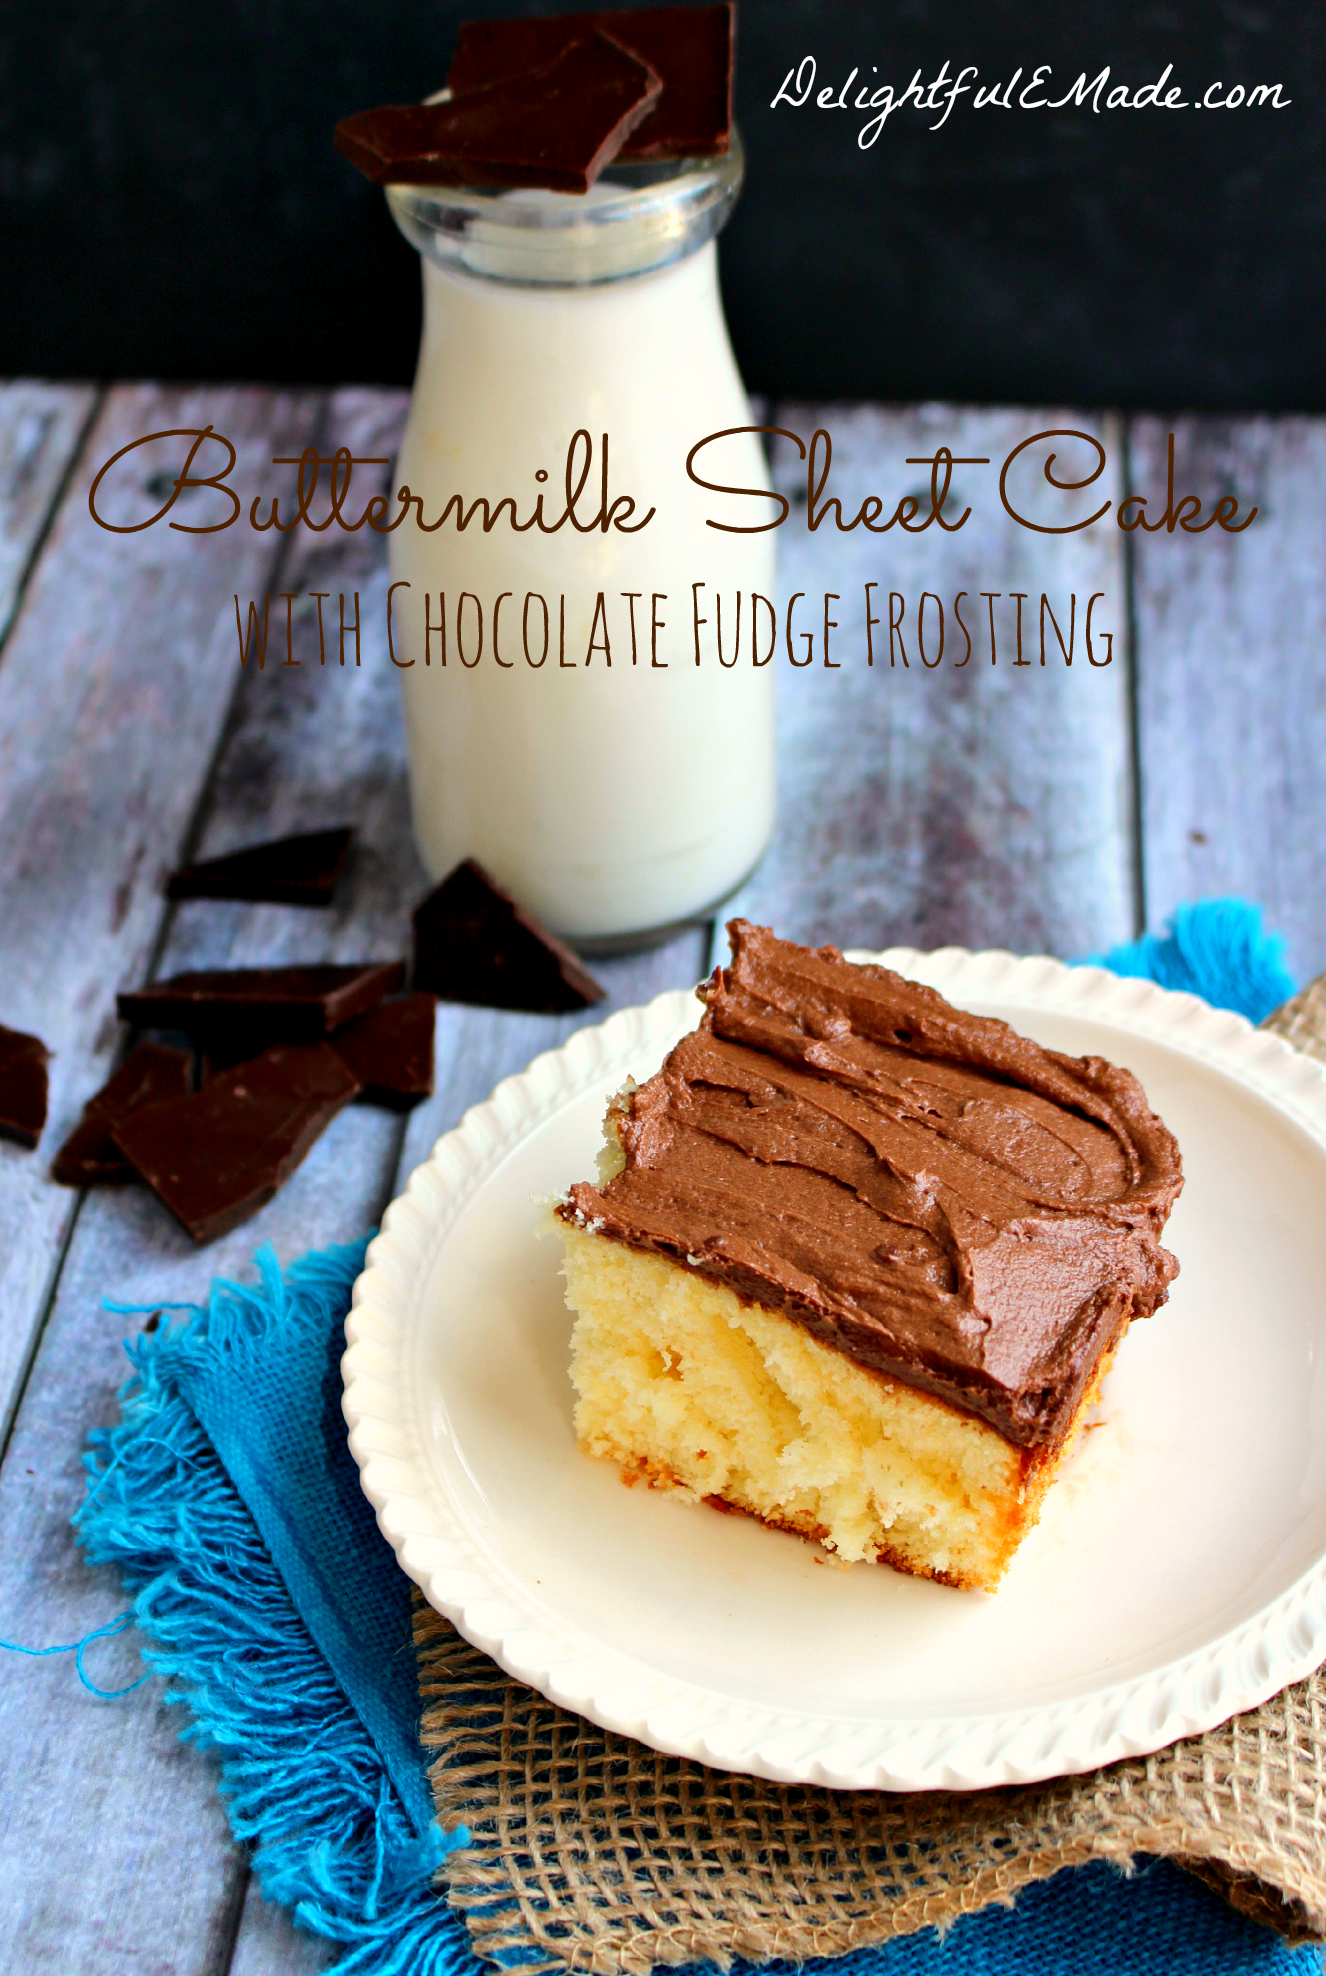 Buttermilk Sheet Cake With Chocolate Fudge Frosting By Delightfulemade Com Sheet Cake Recipes Chocolate Fudge Frosting Fudge Frosting